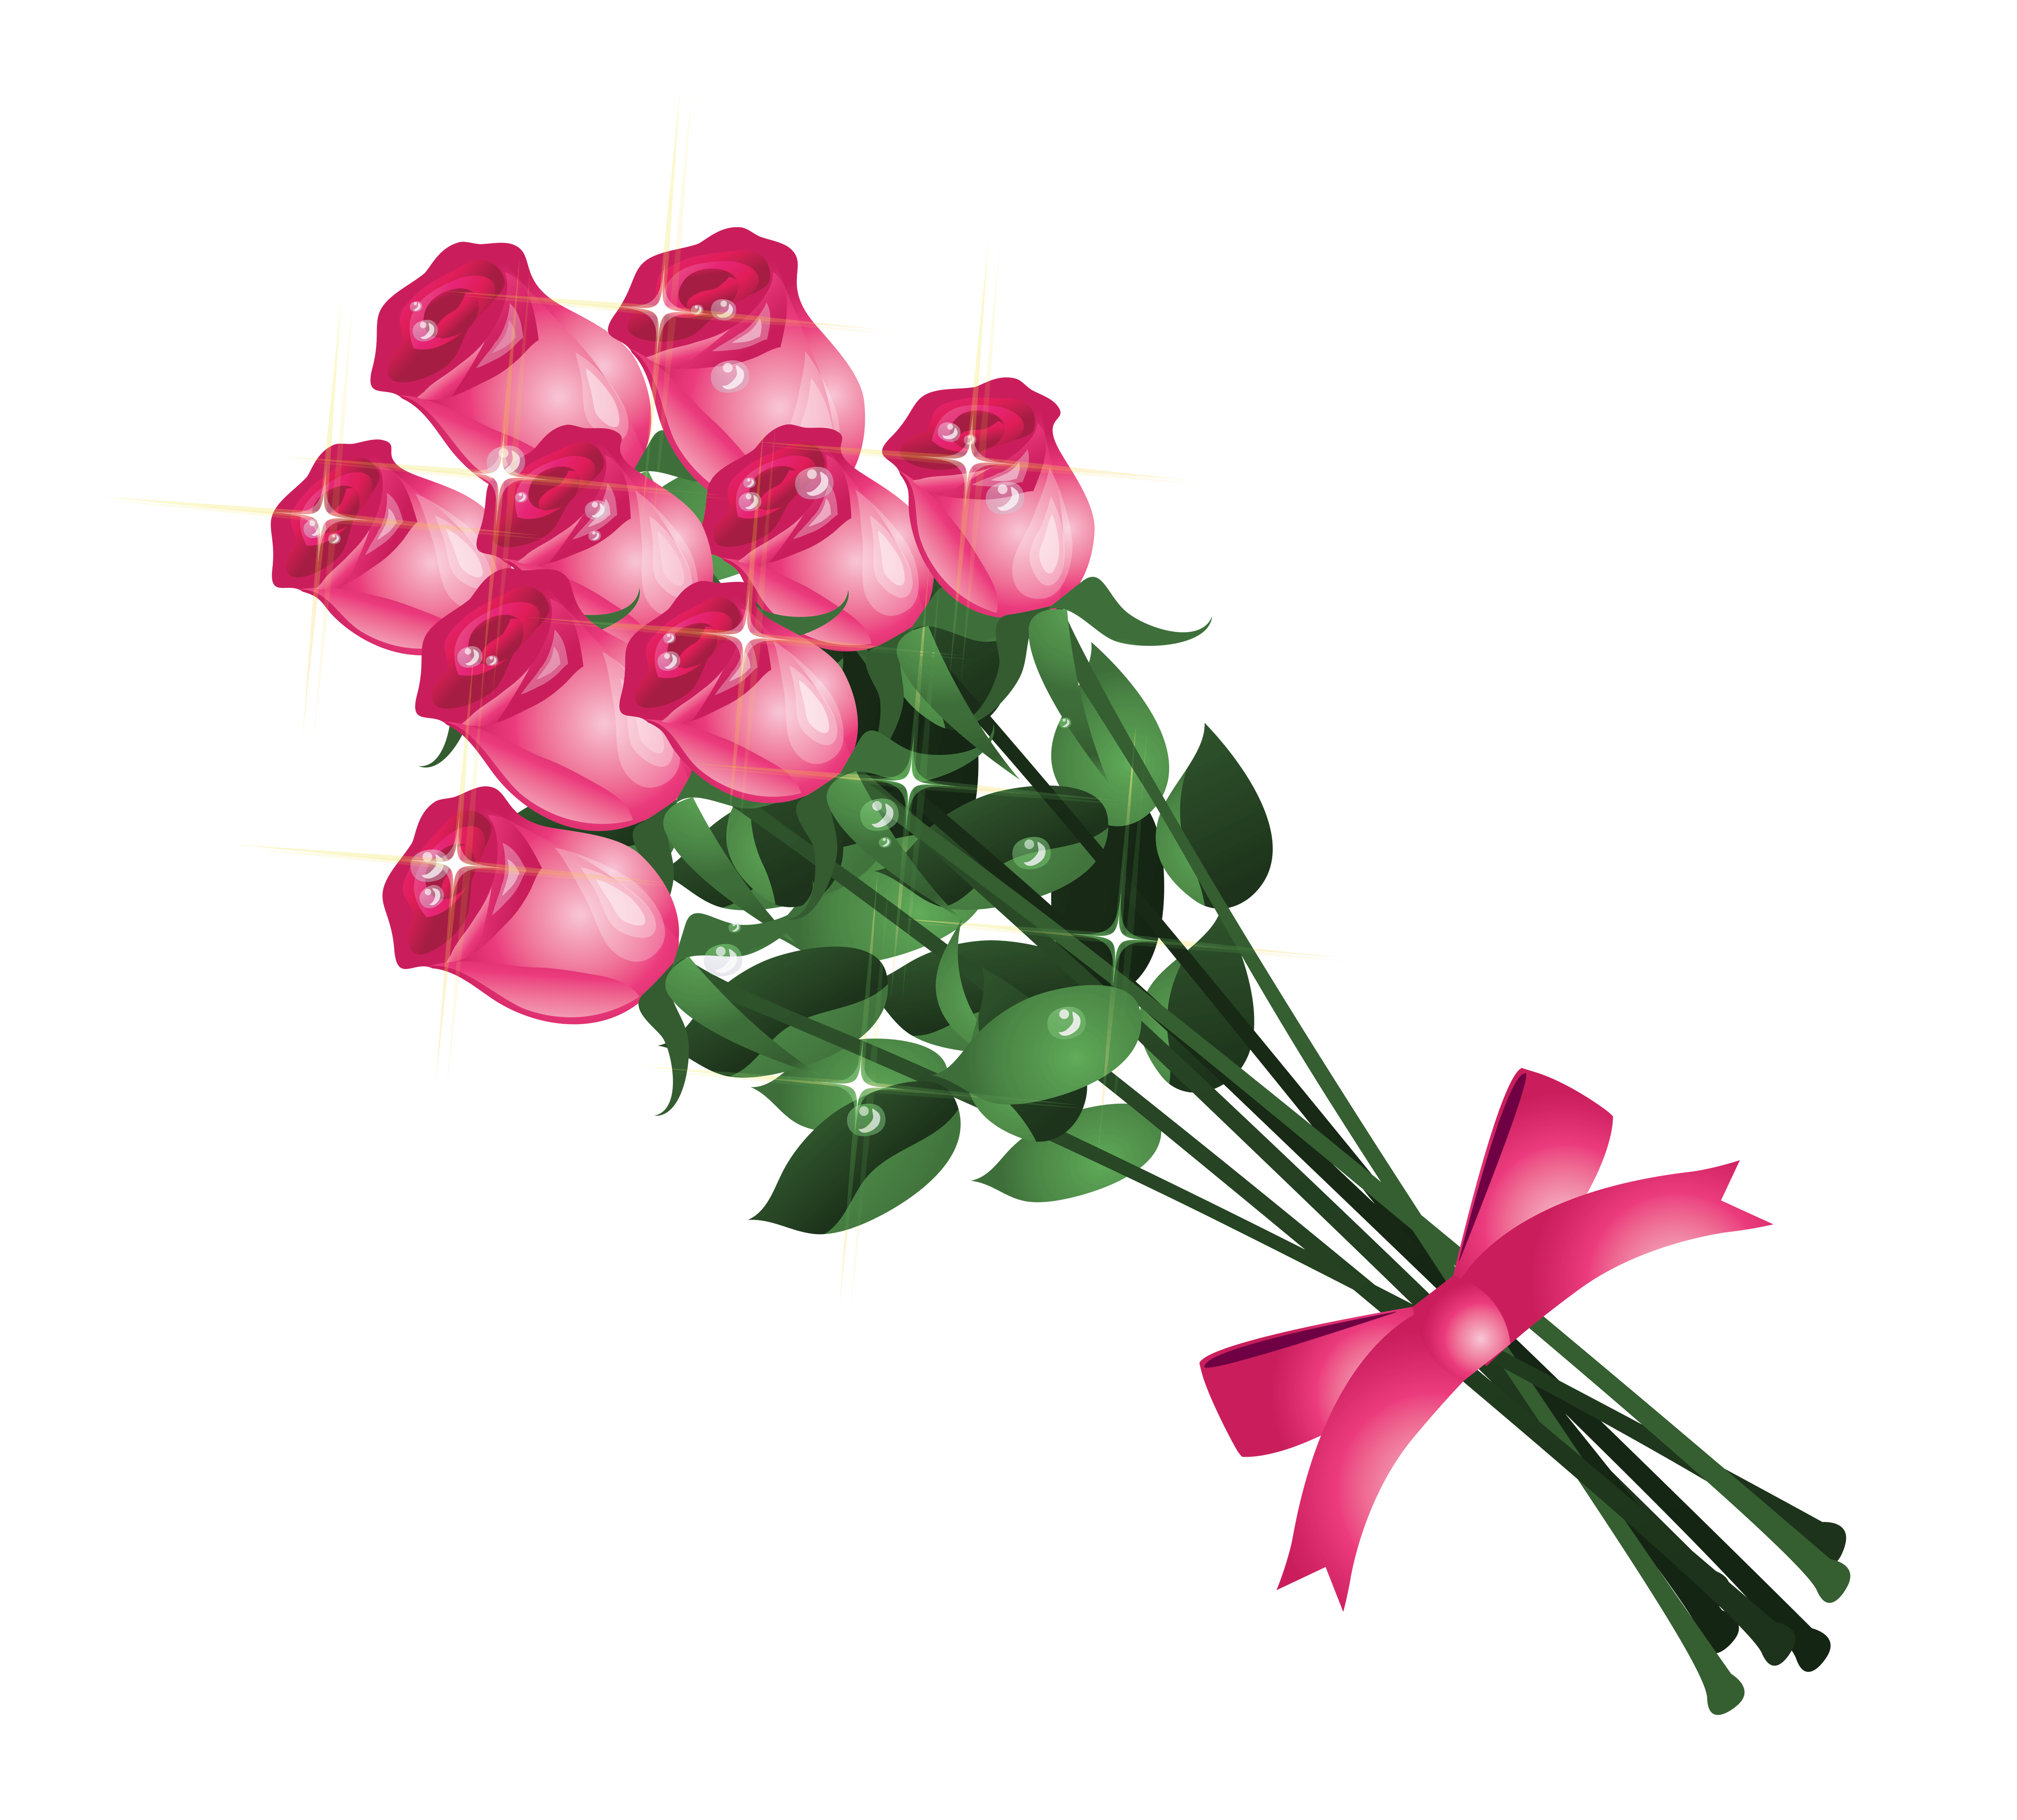 Flower bouquet clipart no background image royalty free library Bouquet Of Flowers Clipart & Bouquet Of Flowers Clip Art Images ... image royalty free library